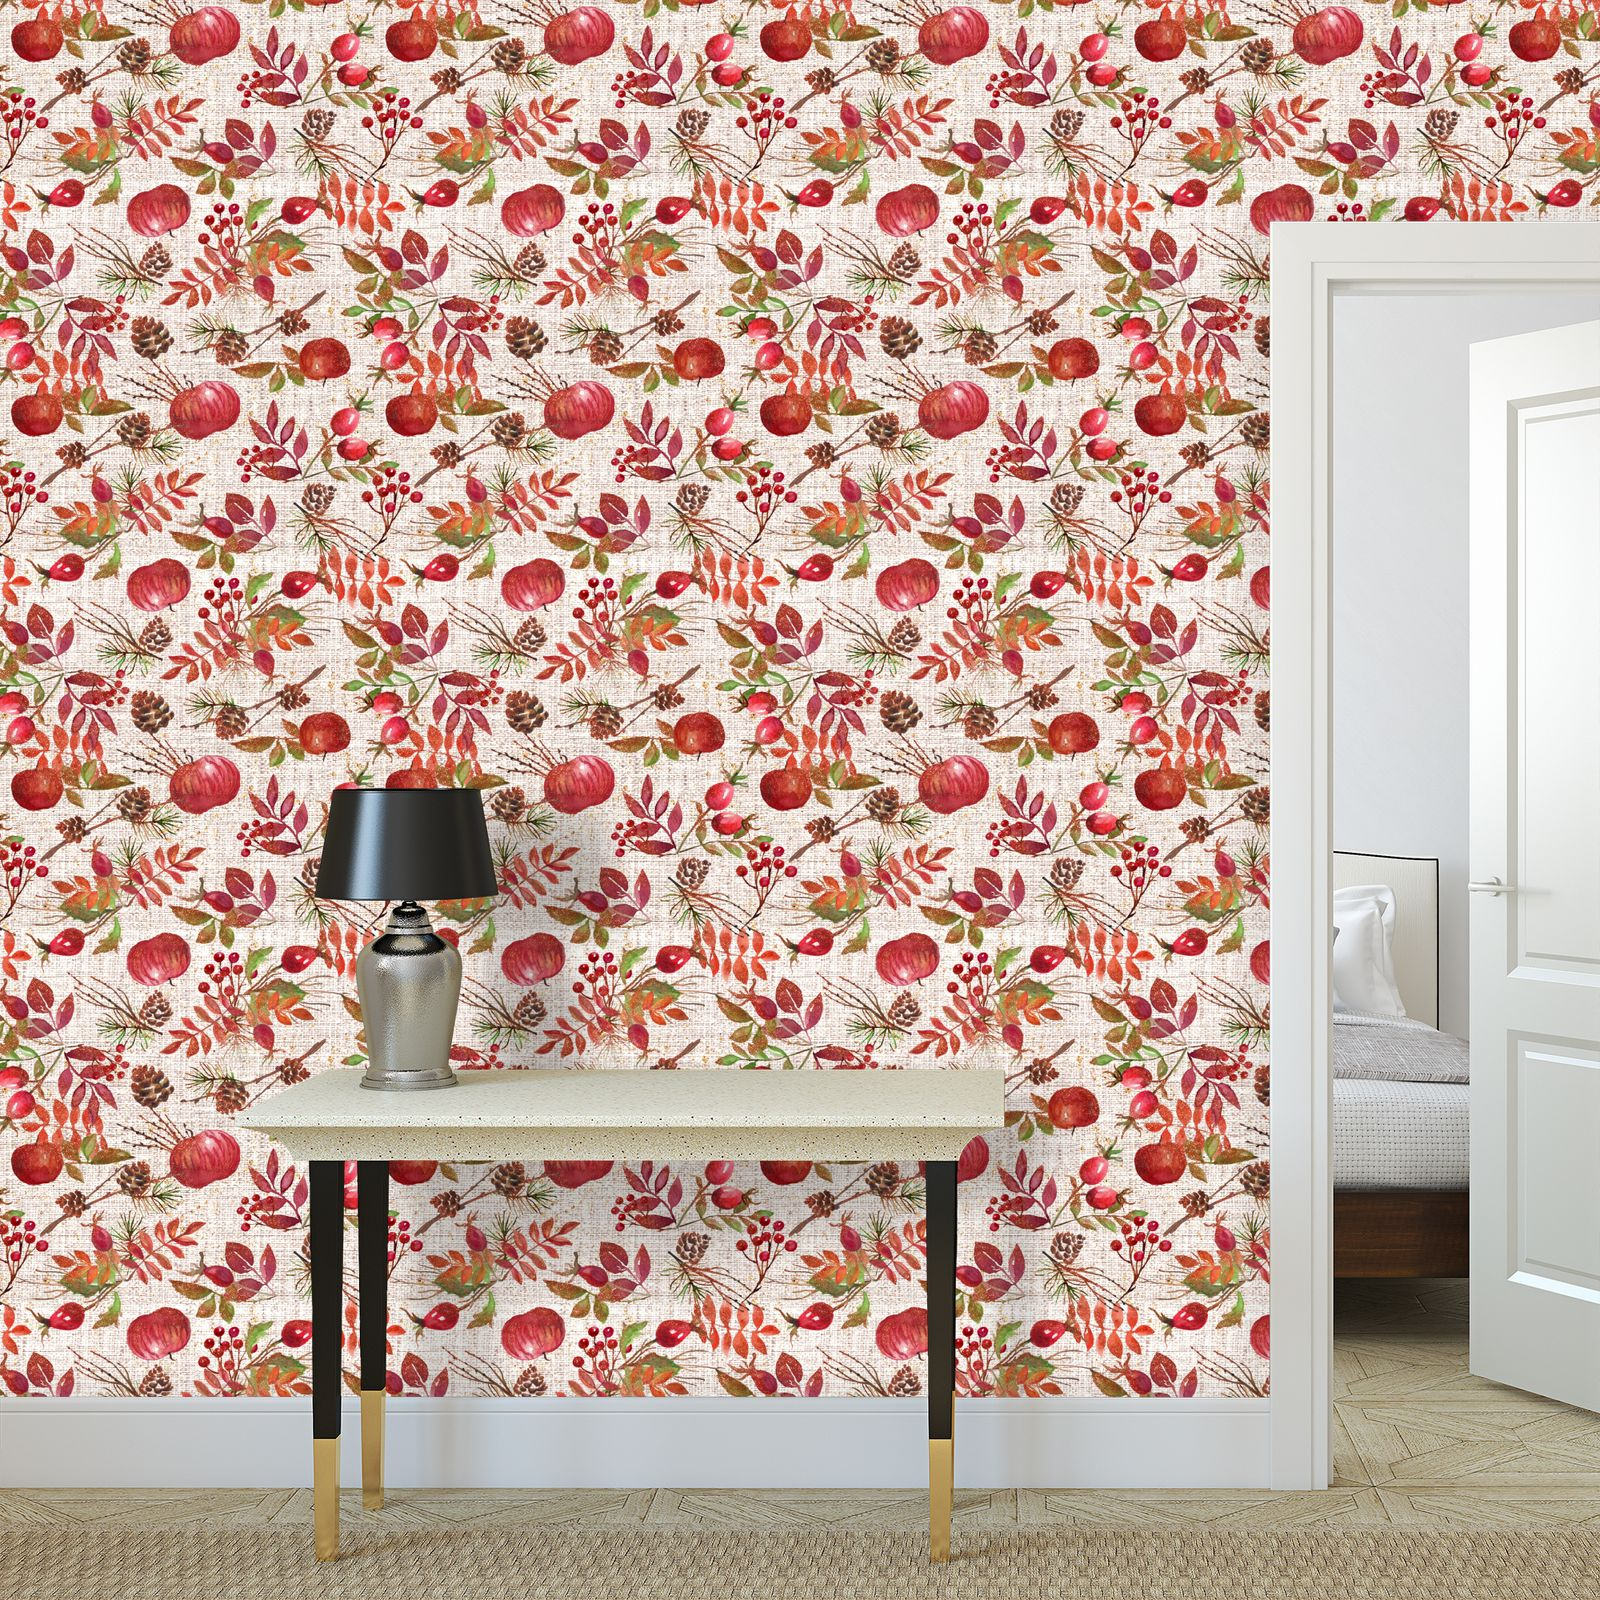 Fall - Wallpaper Rolls - watercolour autumn plants, red berries, hand-painted nature